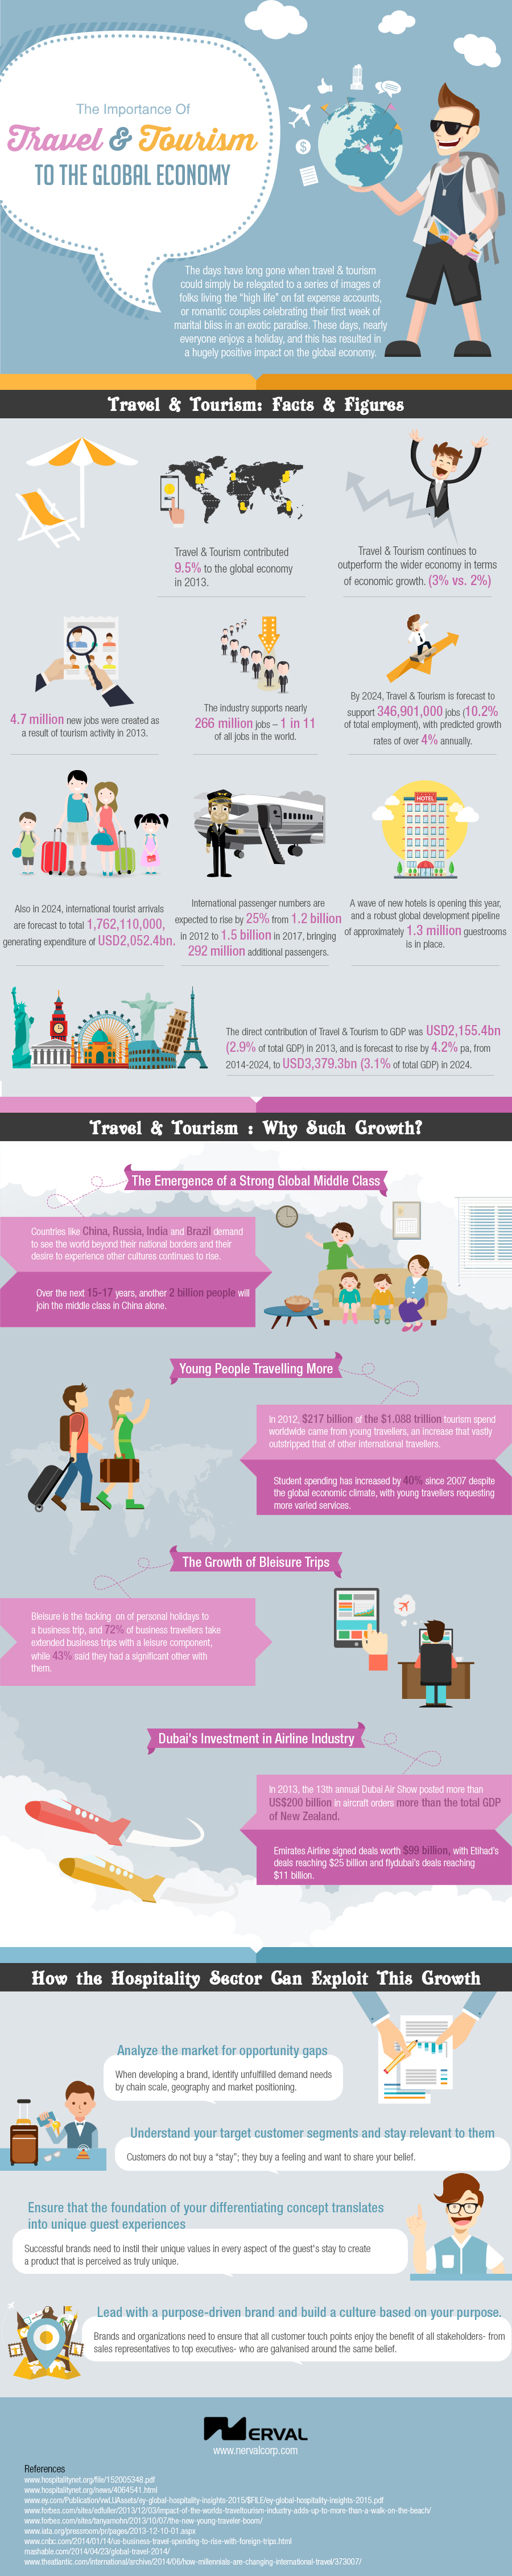 infographic the importance of travel tourism to the global economy the importance of travel tourism to the global economy